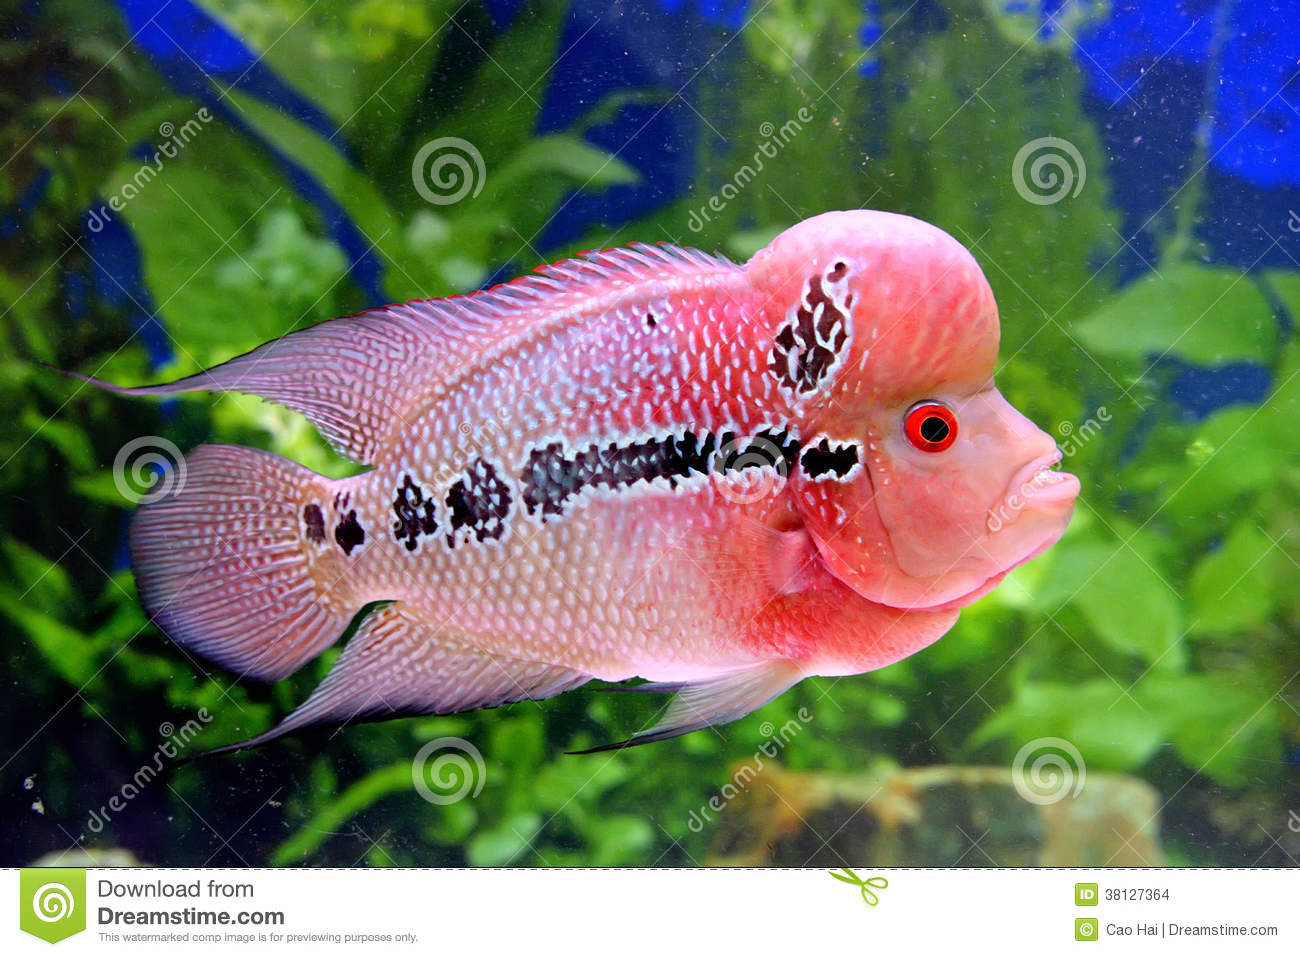 Beaux poissons d 39 aquarium dans le rose photo stock image for Prix poisson aquarium